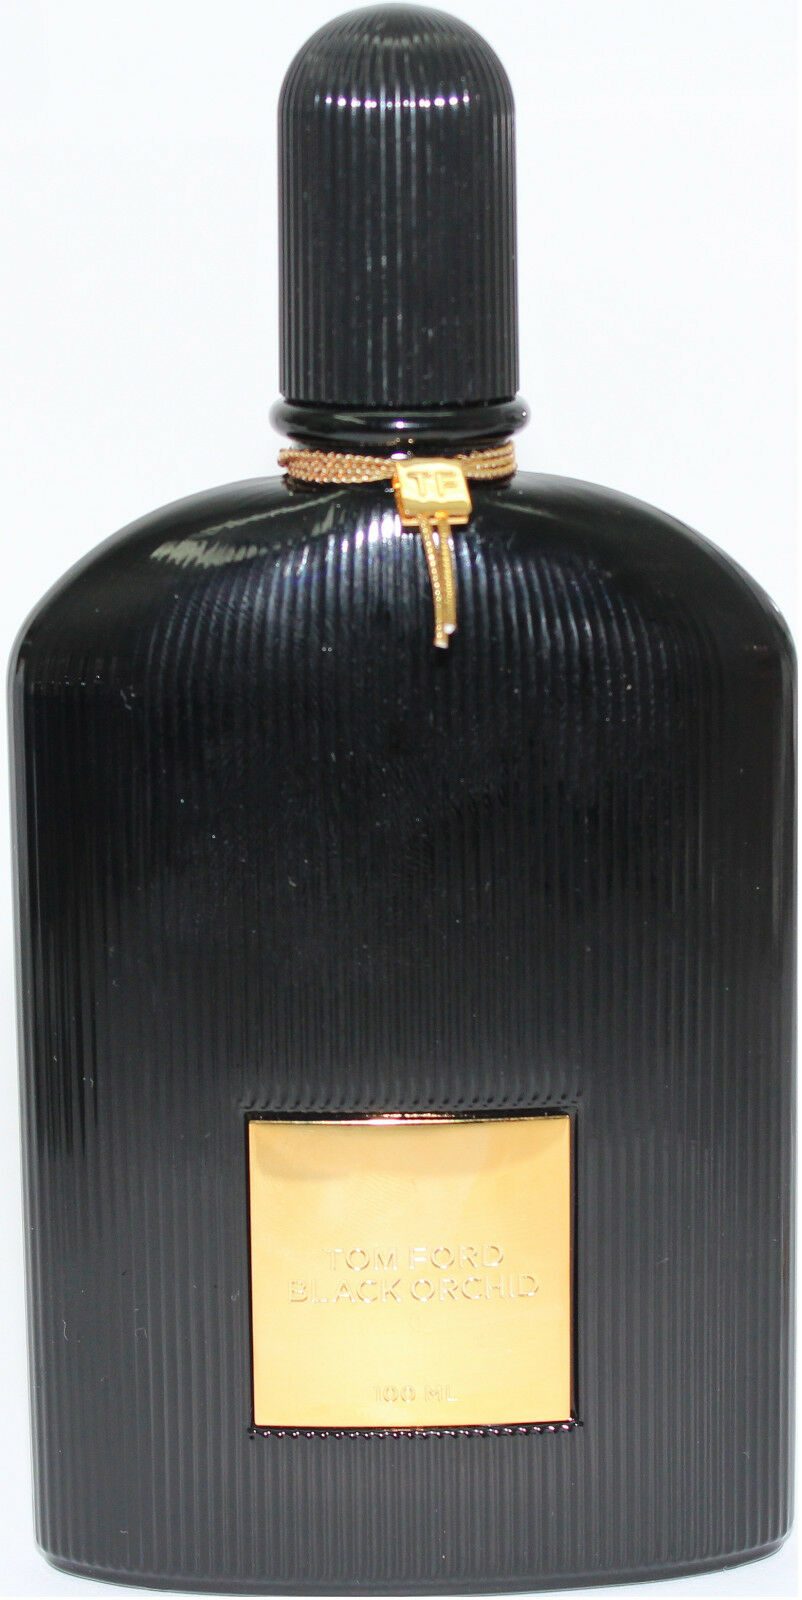 tom ford black orchid unbox 3 4 oz edp spray for women by tom ford ebay. Cars Review. Best American Auto & Cars Review